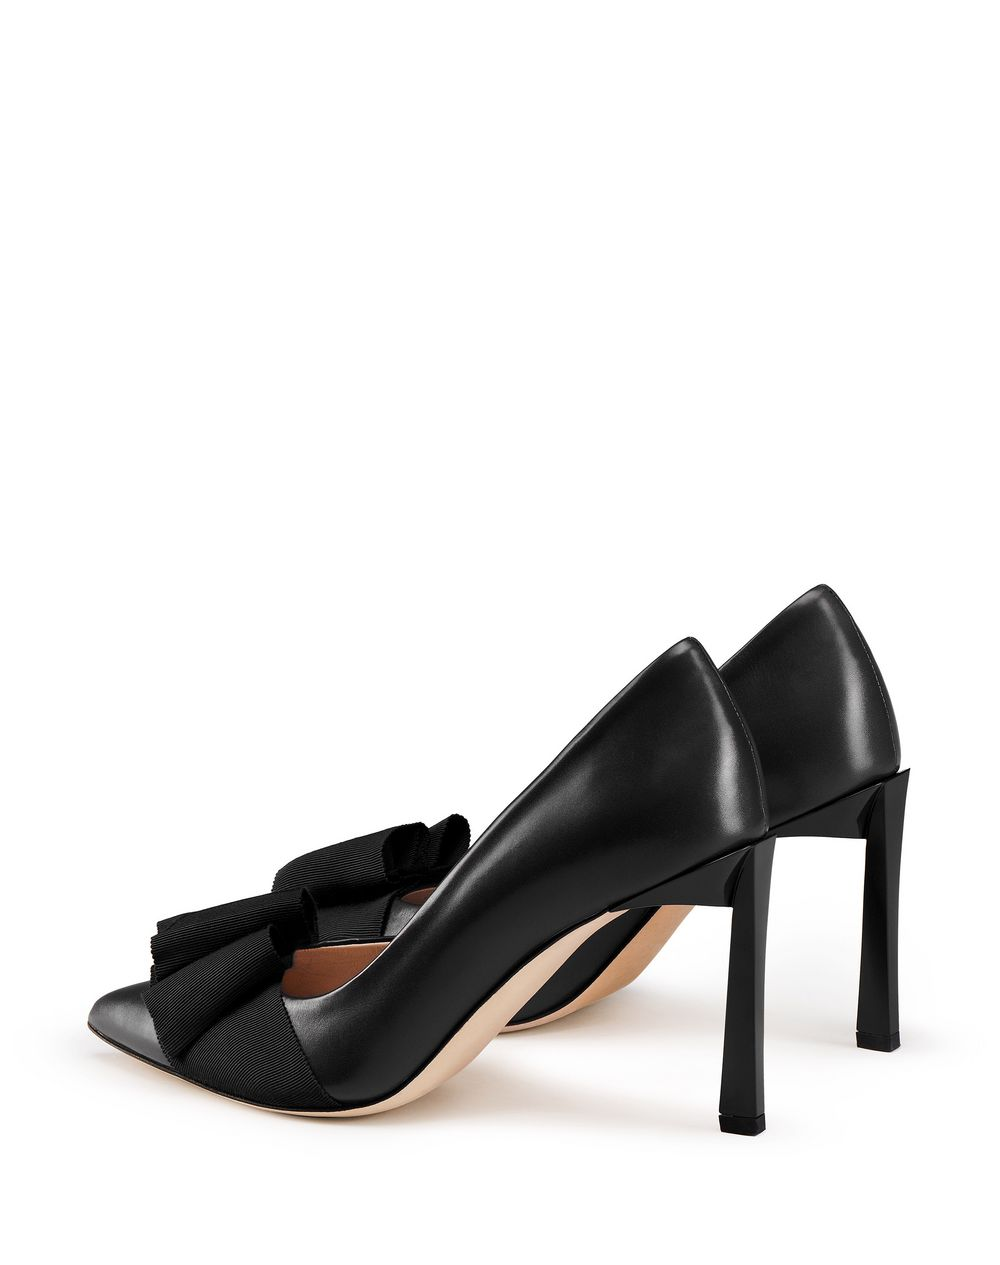 PUMP WITH BLACK BOW - Lanvin